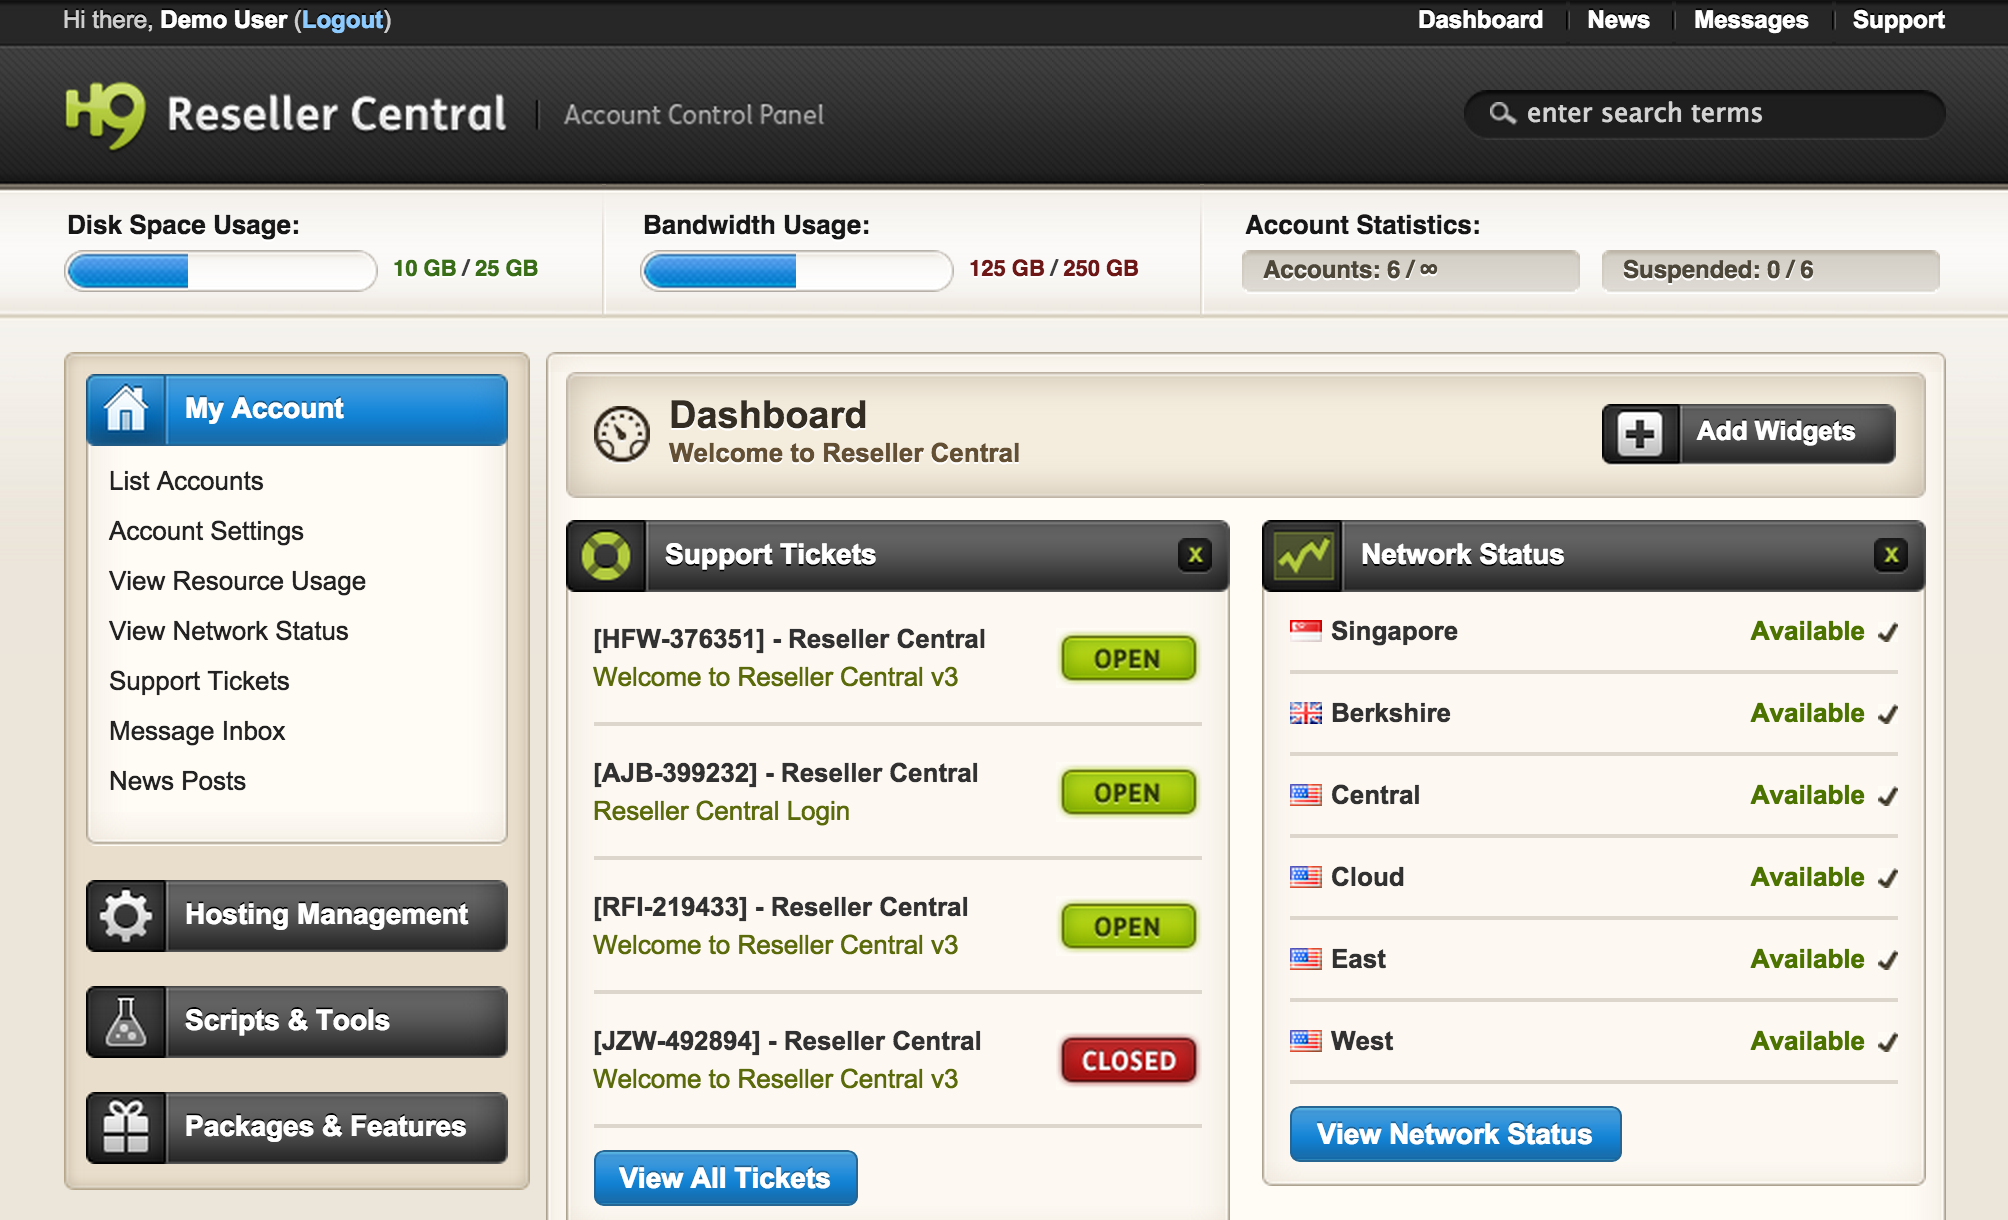 Reseller Central Dashboard